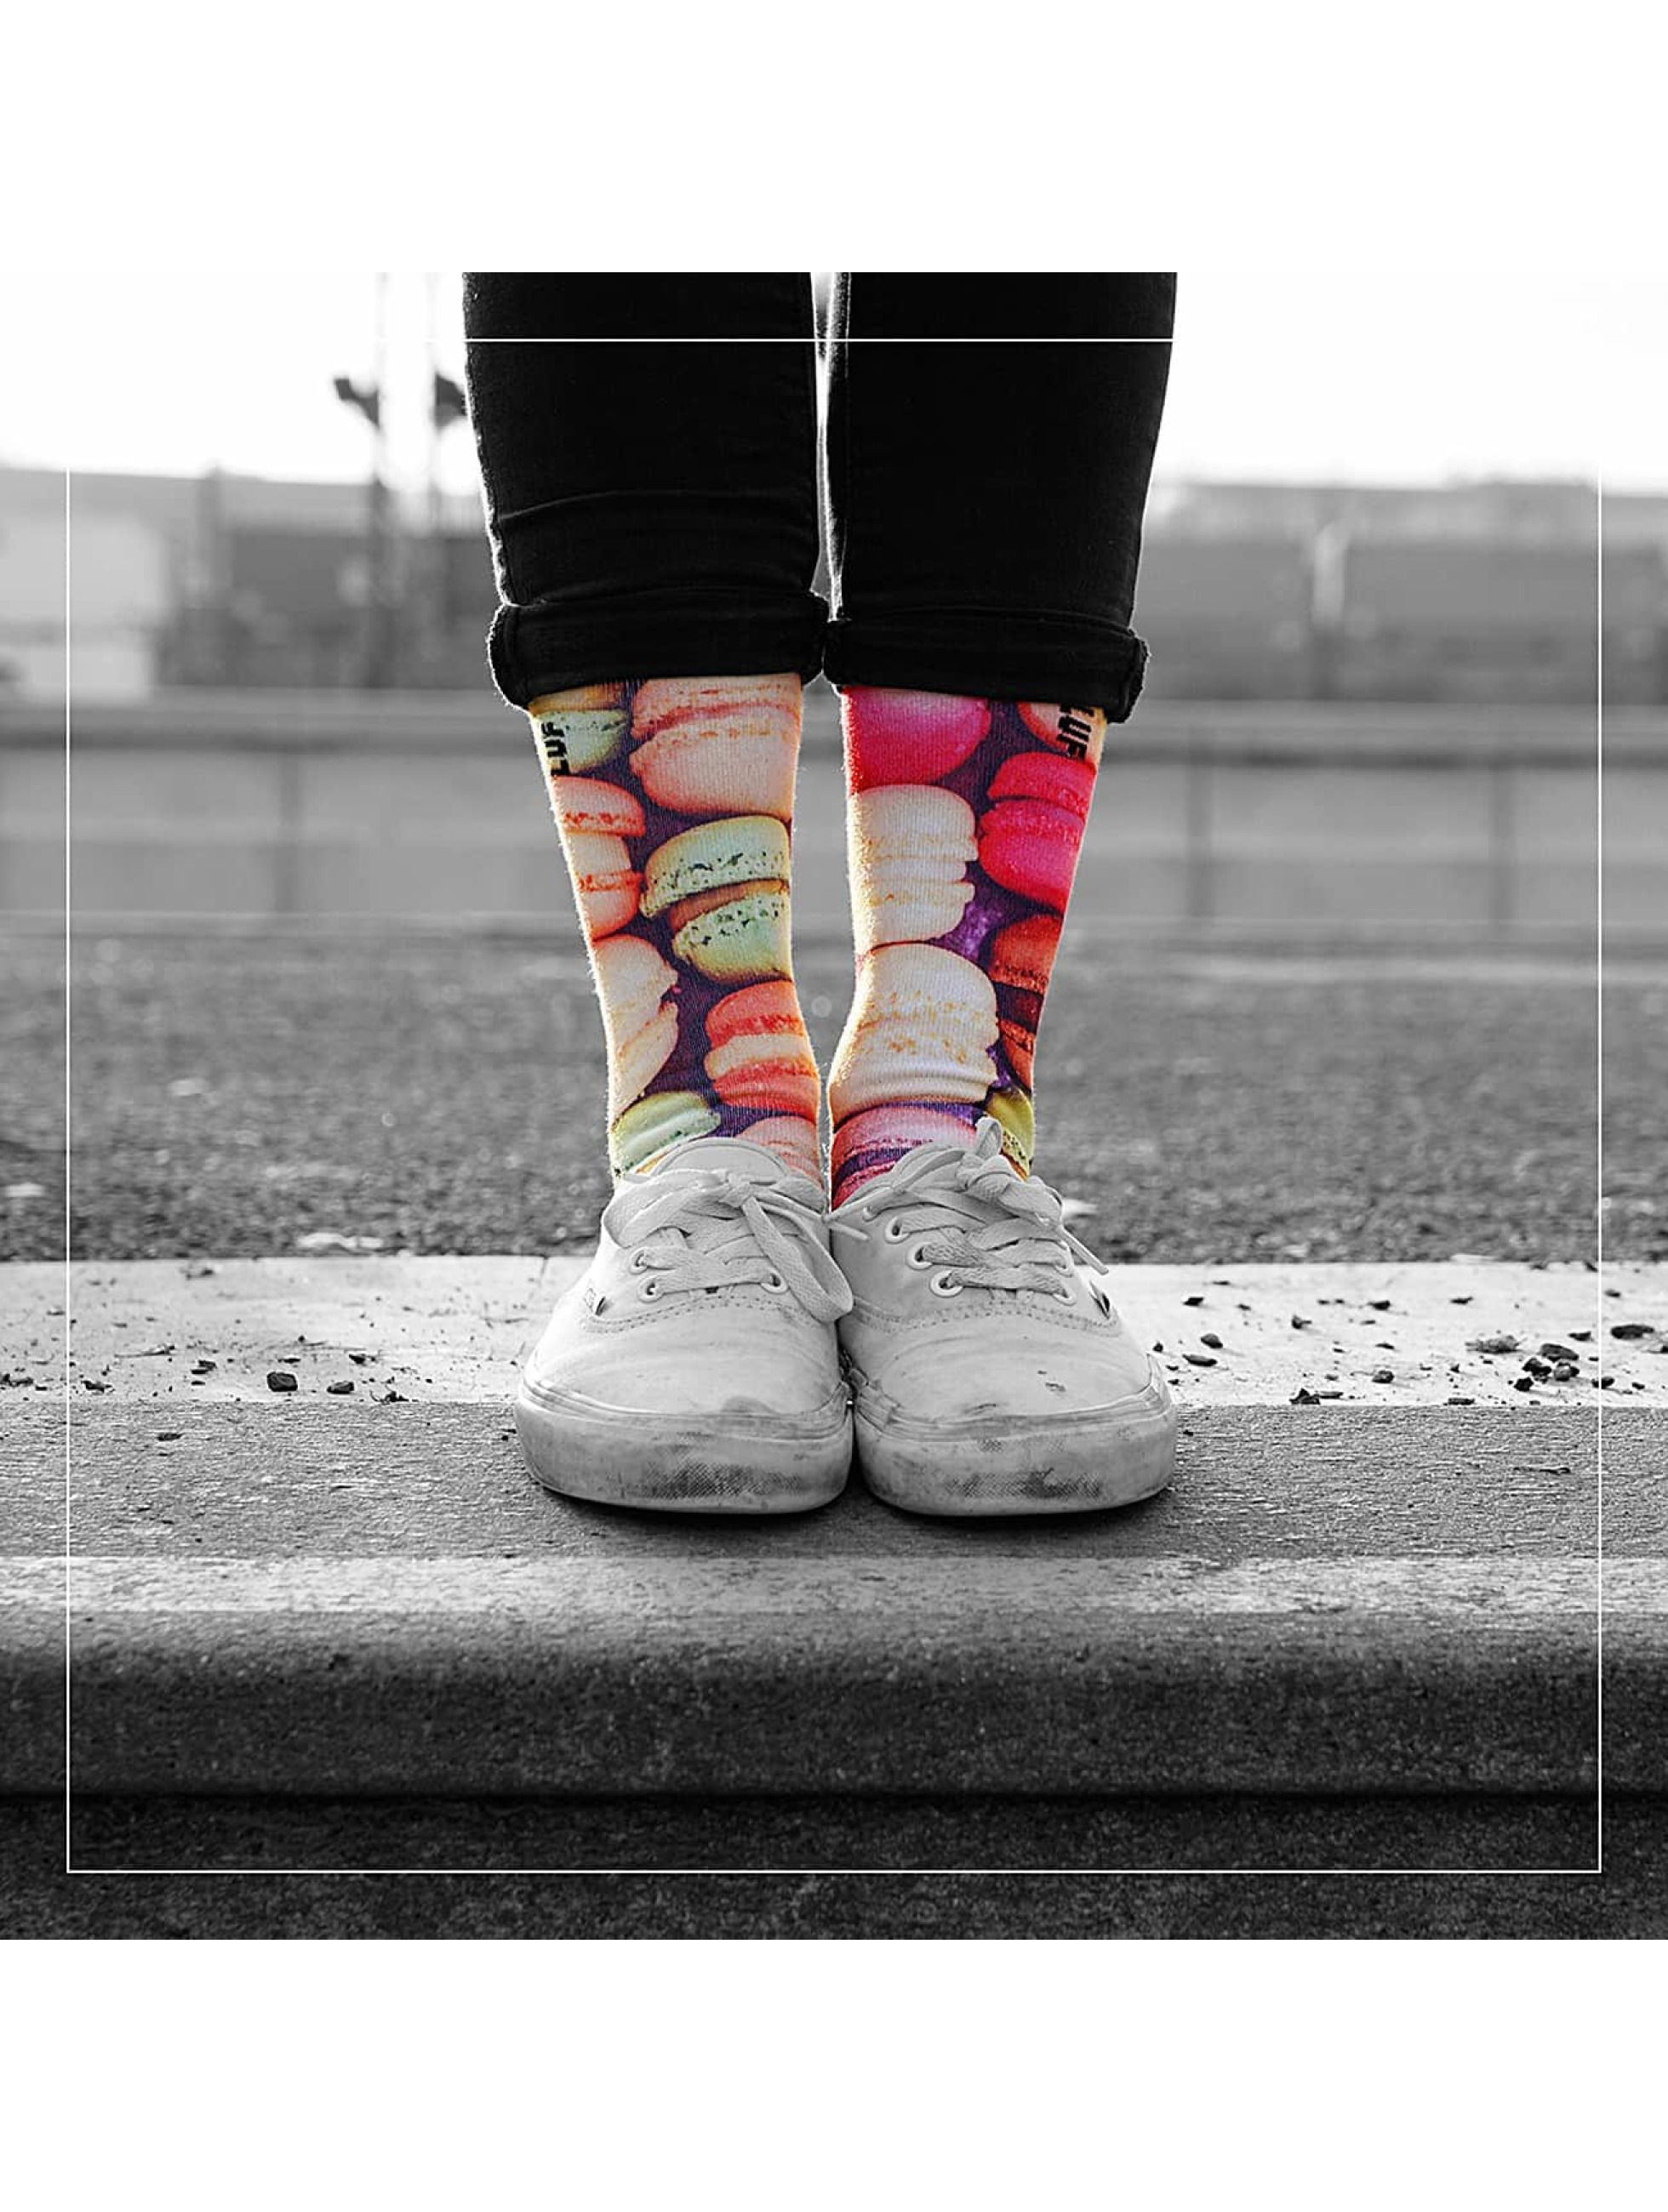 LUF SOX Chaussettes Macaroo multicolore